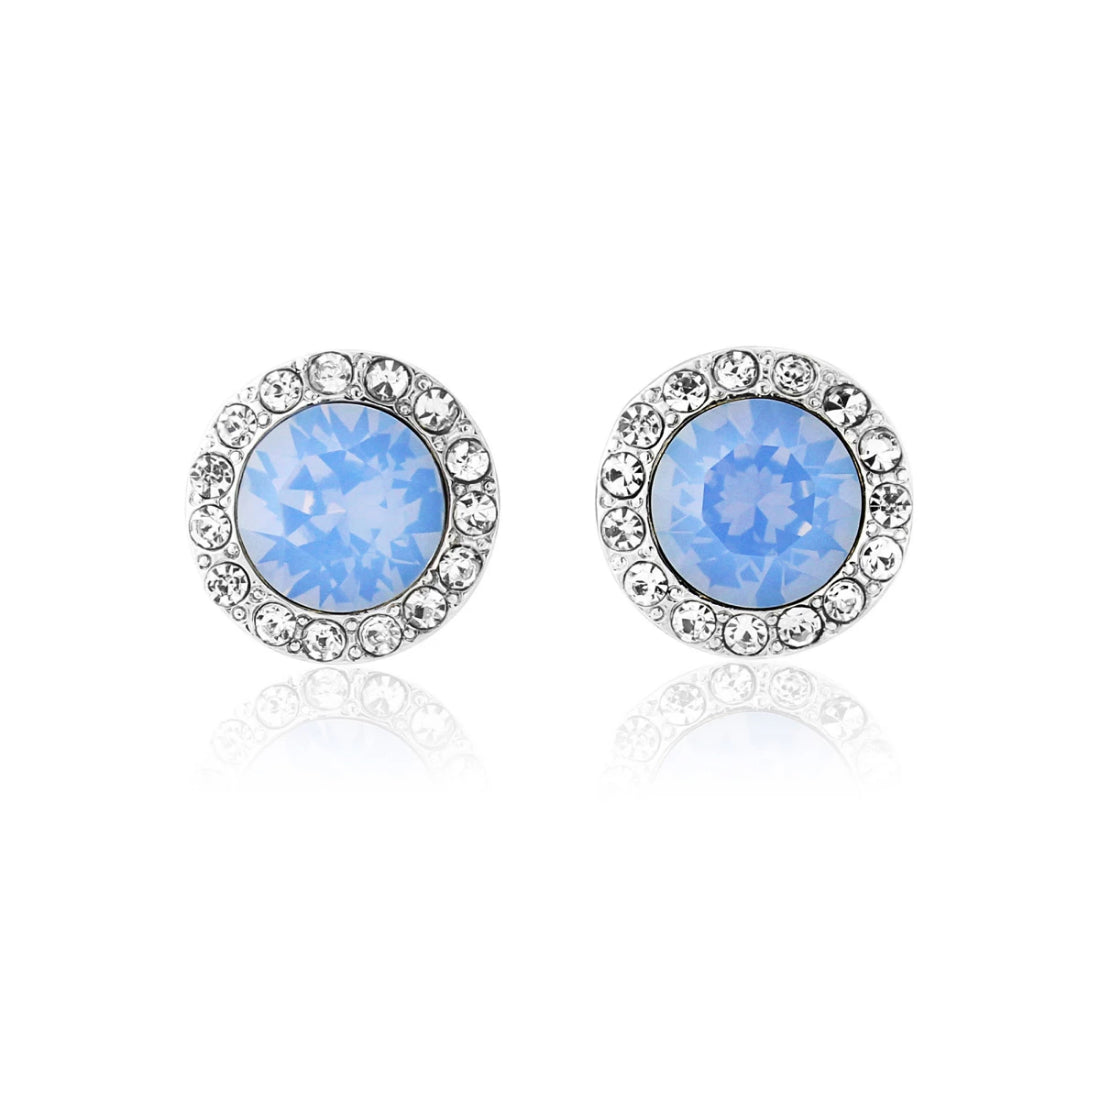 Shimmering Sky Earrings